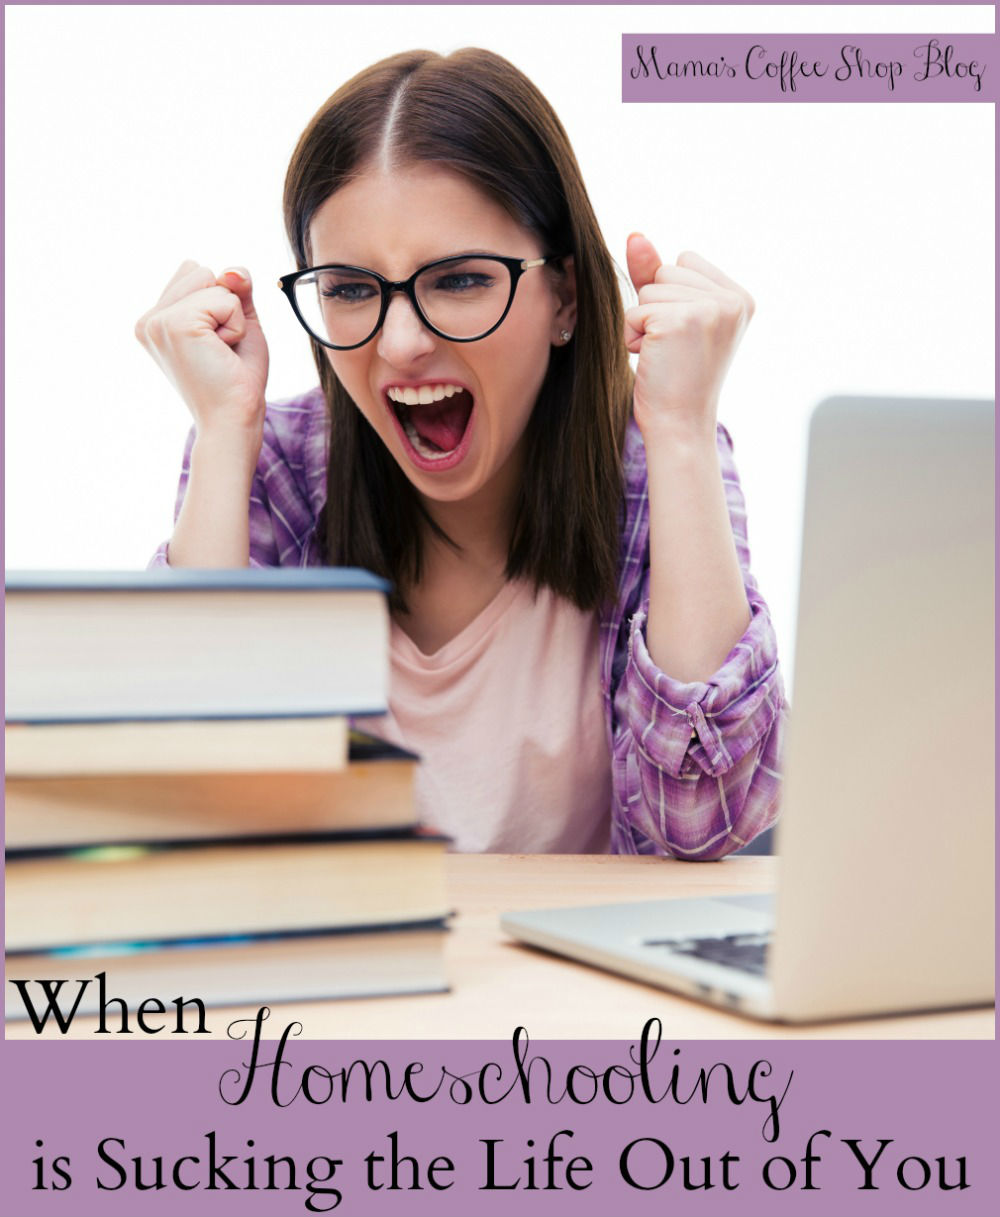 When Homeschooling is Sucking the Life Out of You - Mama's Coffee Shop Blog